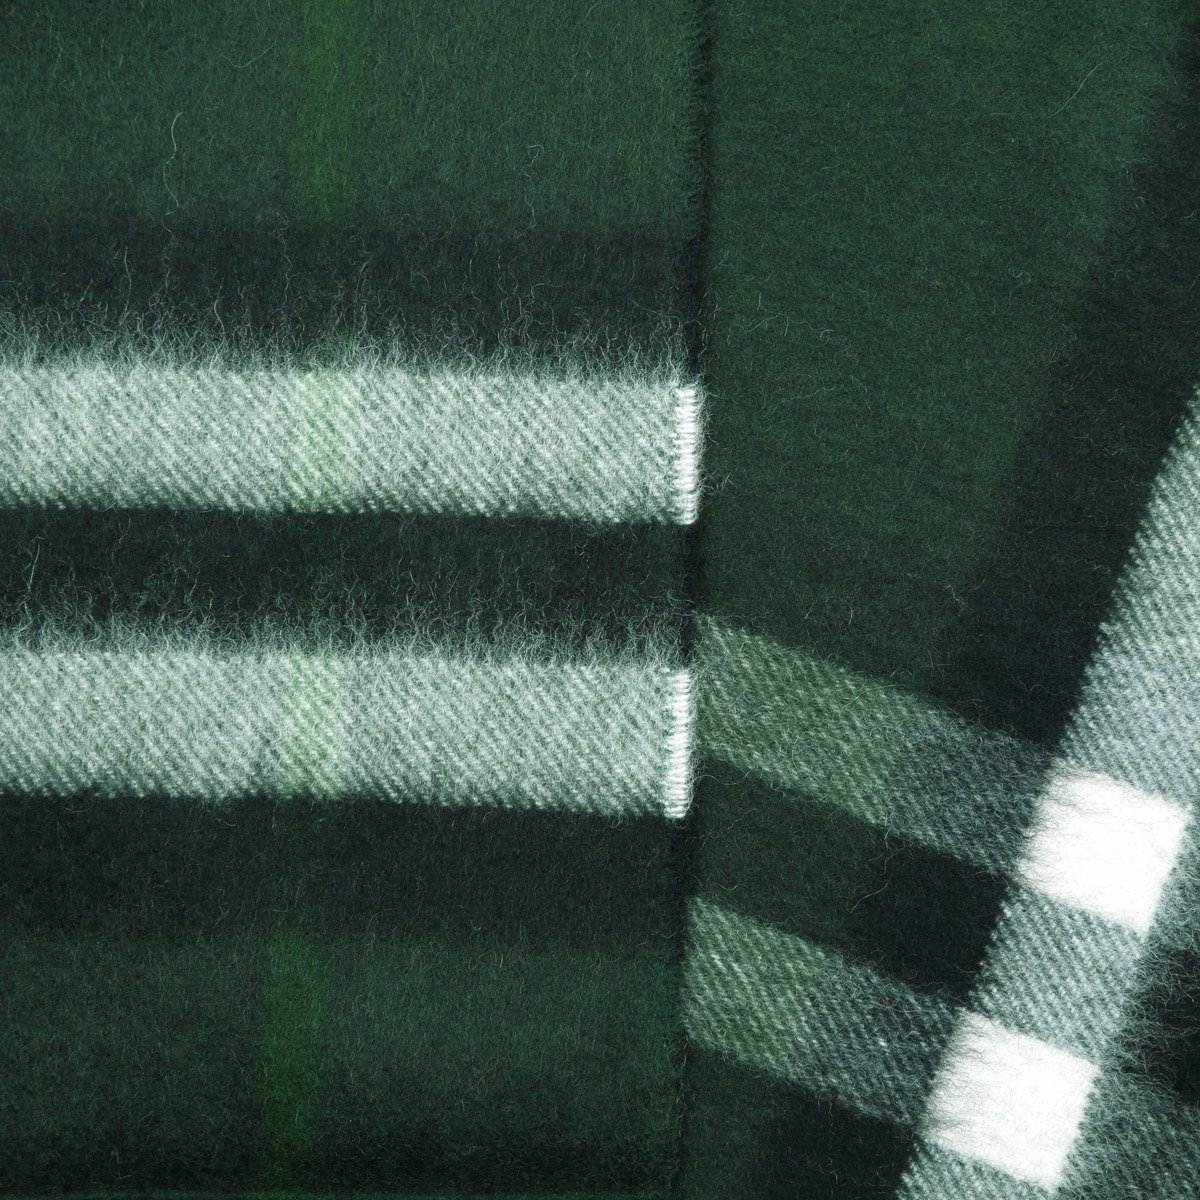 Burberry Women's Classic Check Cashmere Scarf (One Size, Dark Forest Green) by BURBERRY (Image #3)